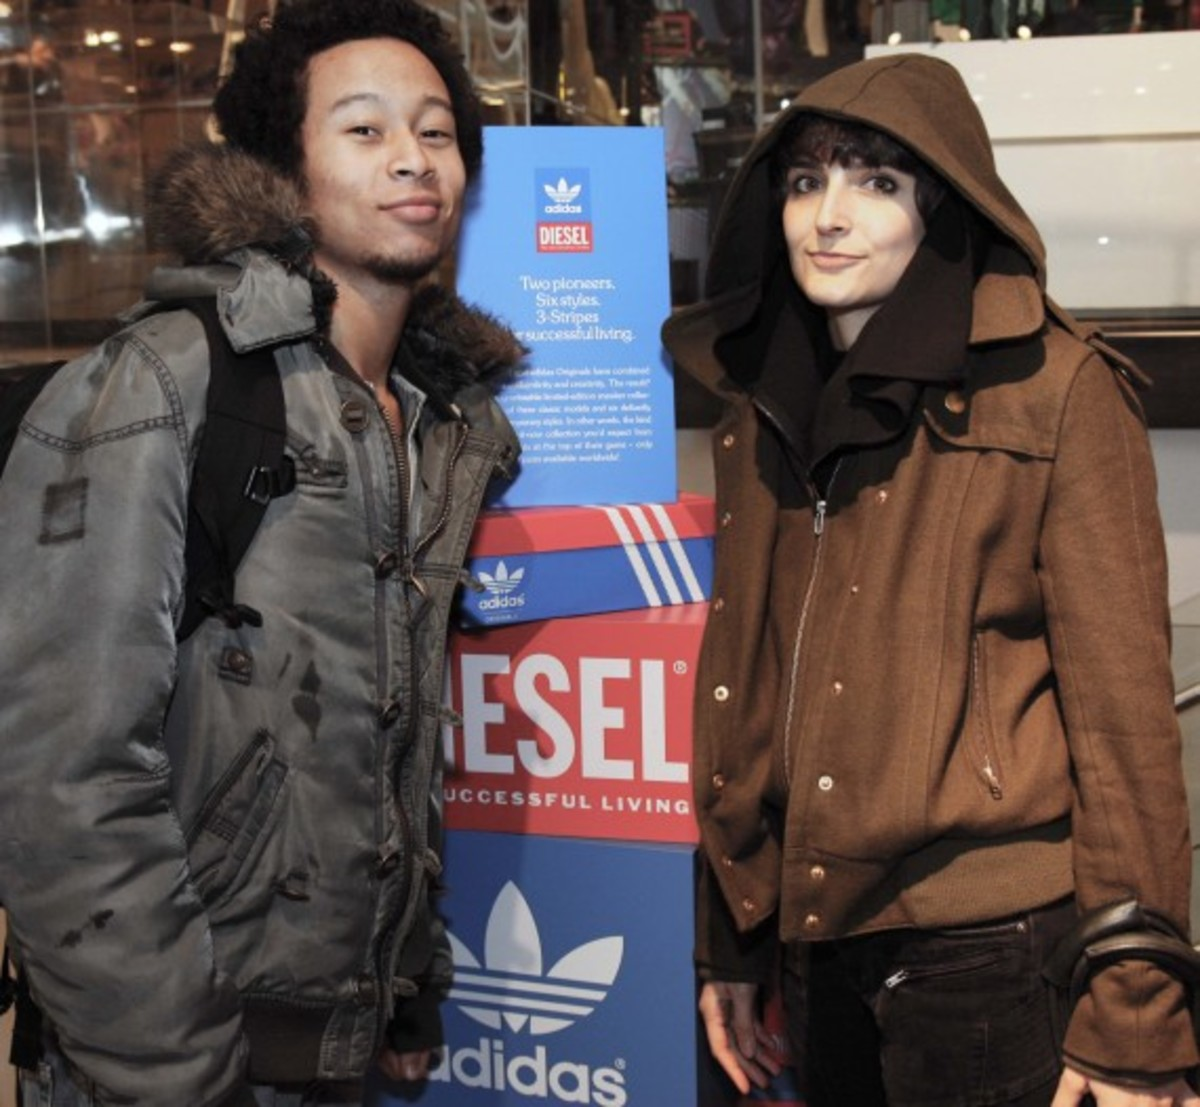 adidas-originals-diesel-capsule-sneaker-collection-event-recap-06